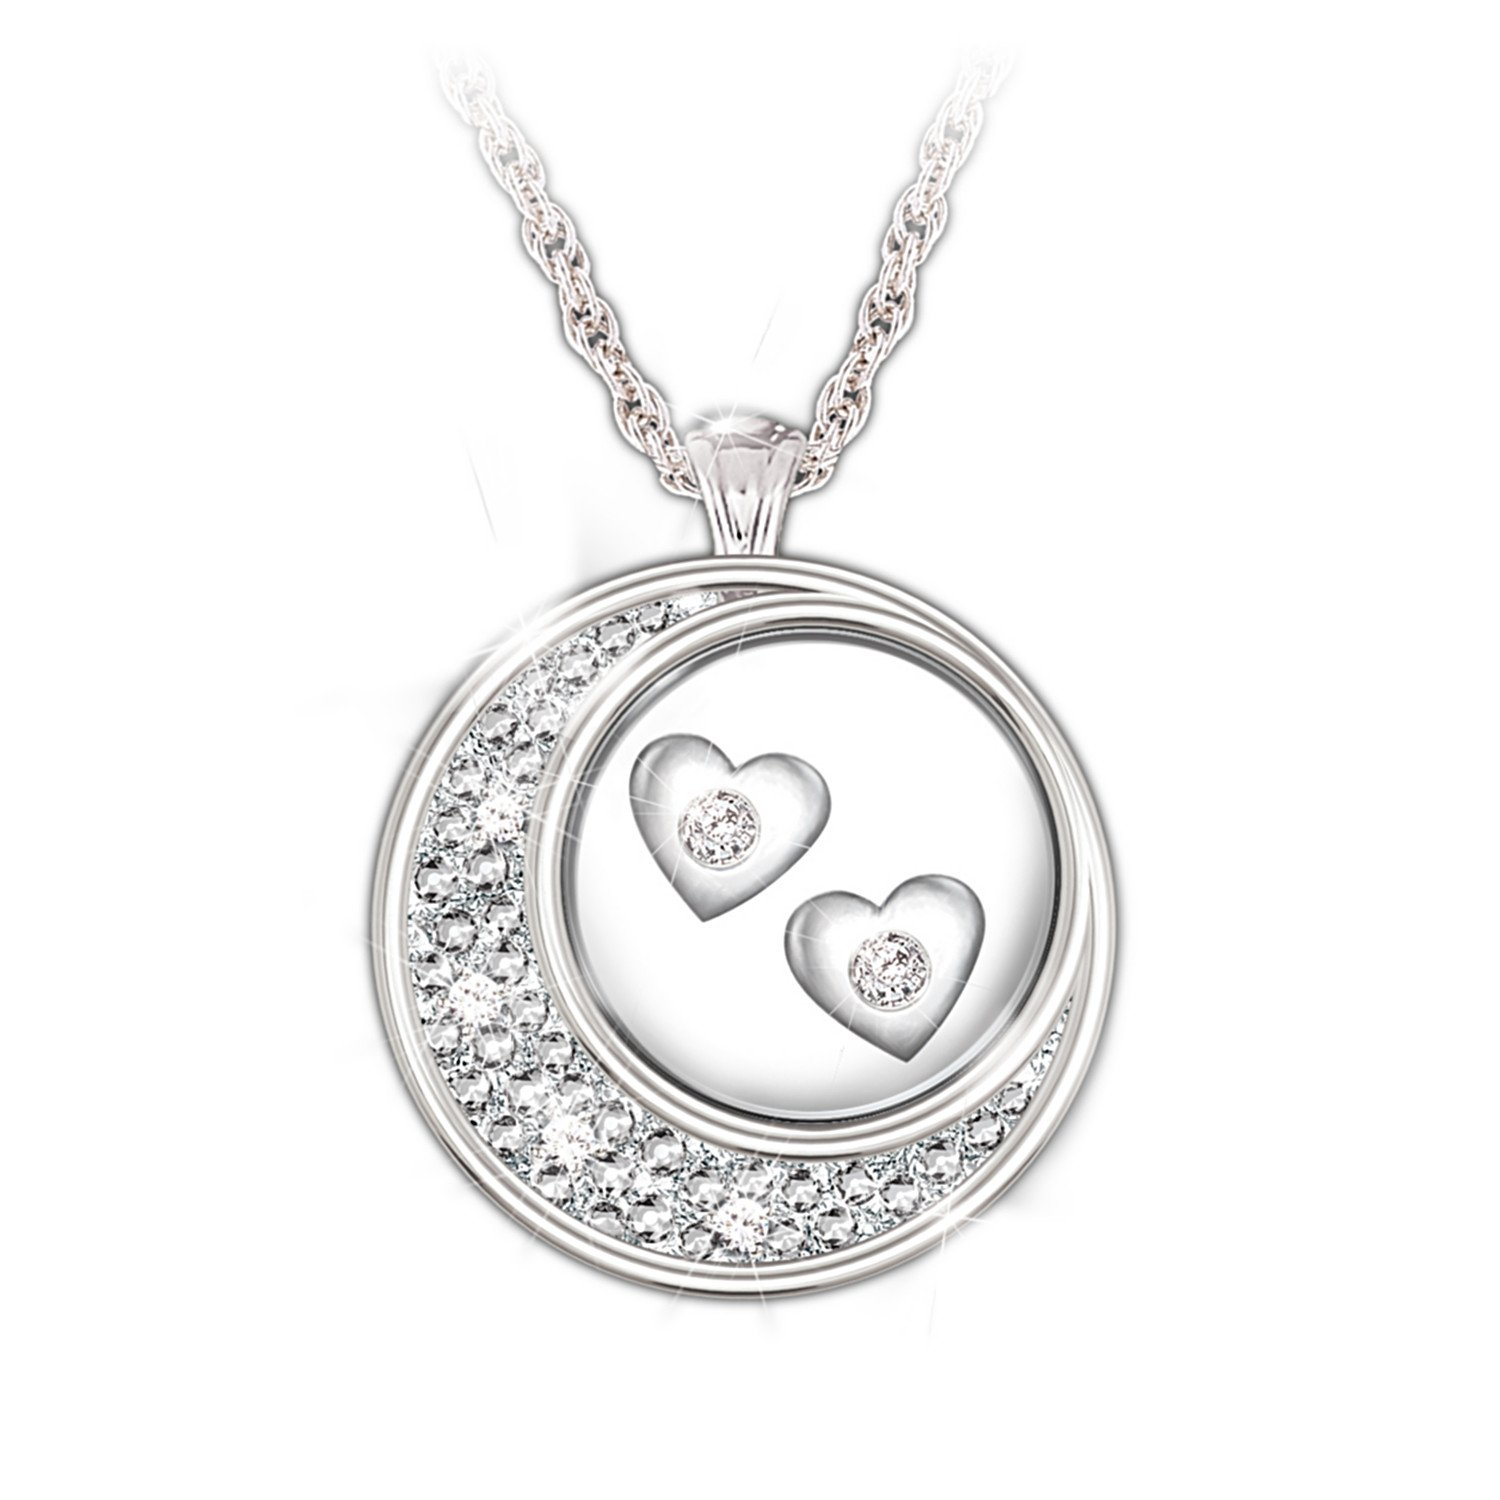 Sterling Silver And Diamond Pendant Necklace: I Love You To The Moon And Back by The Bradford Exchange